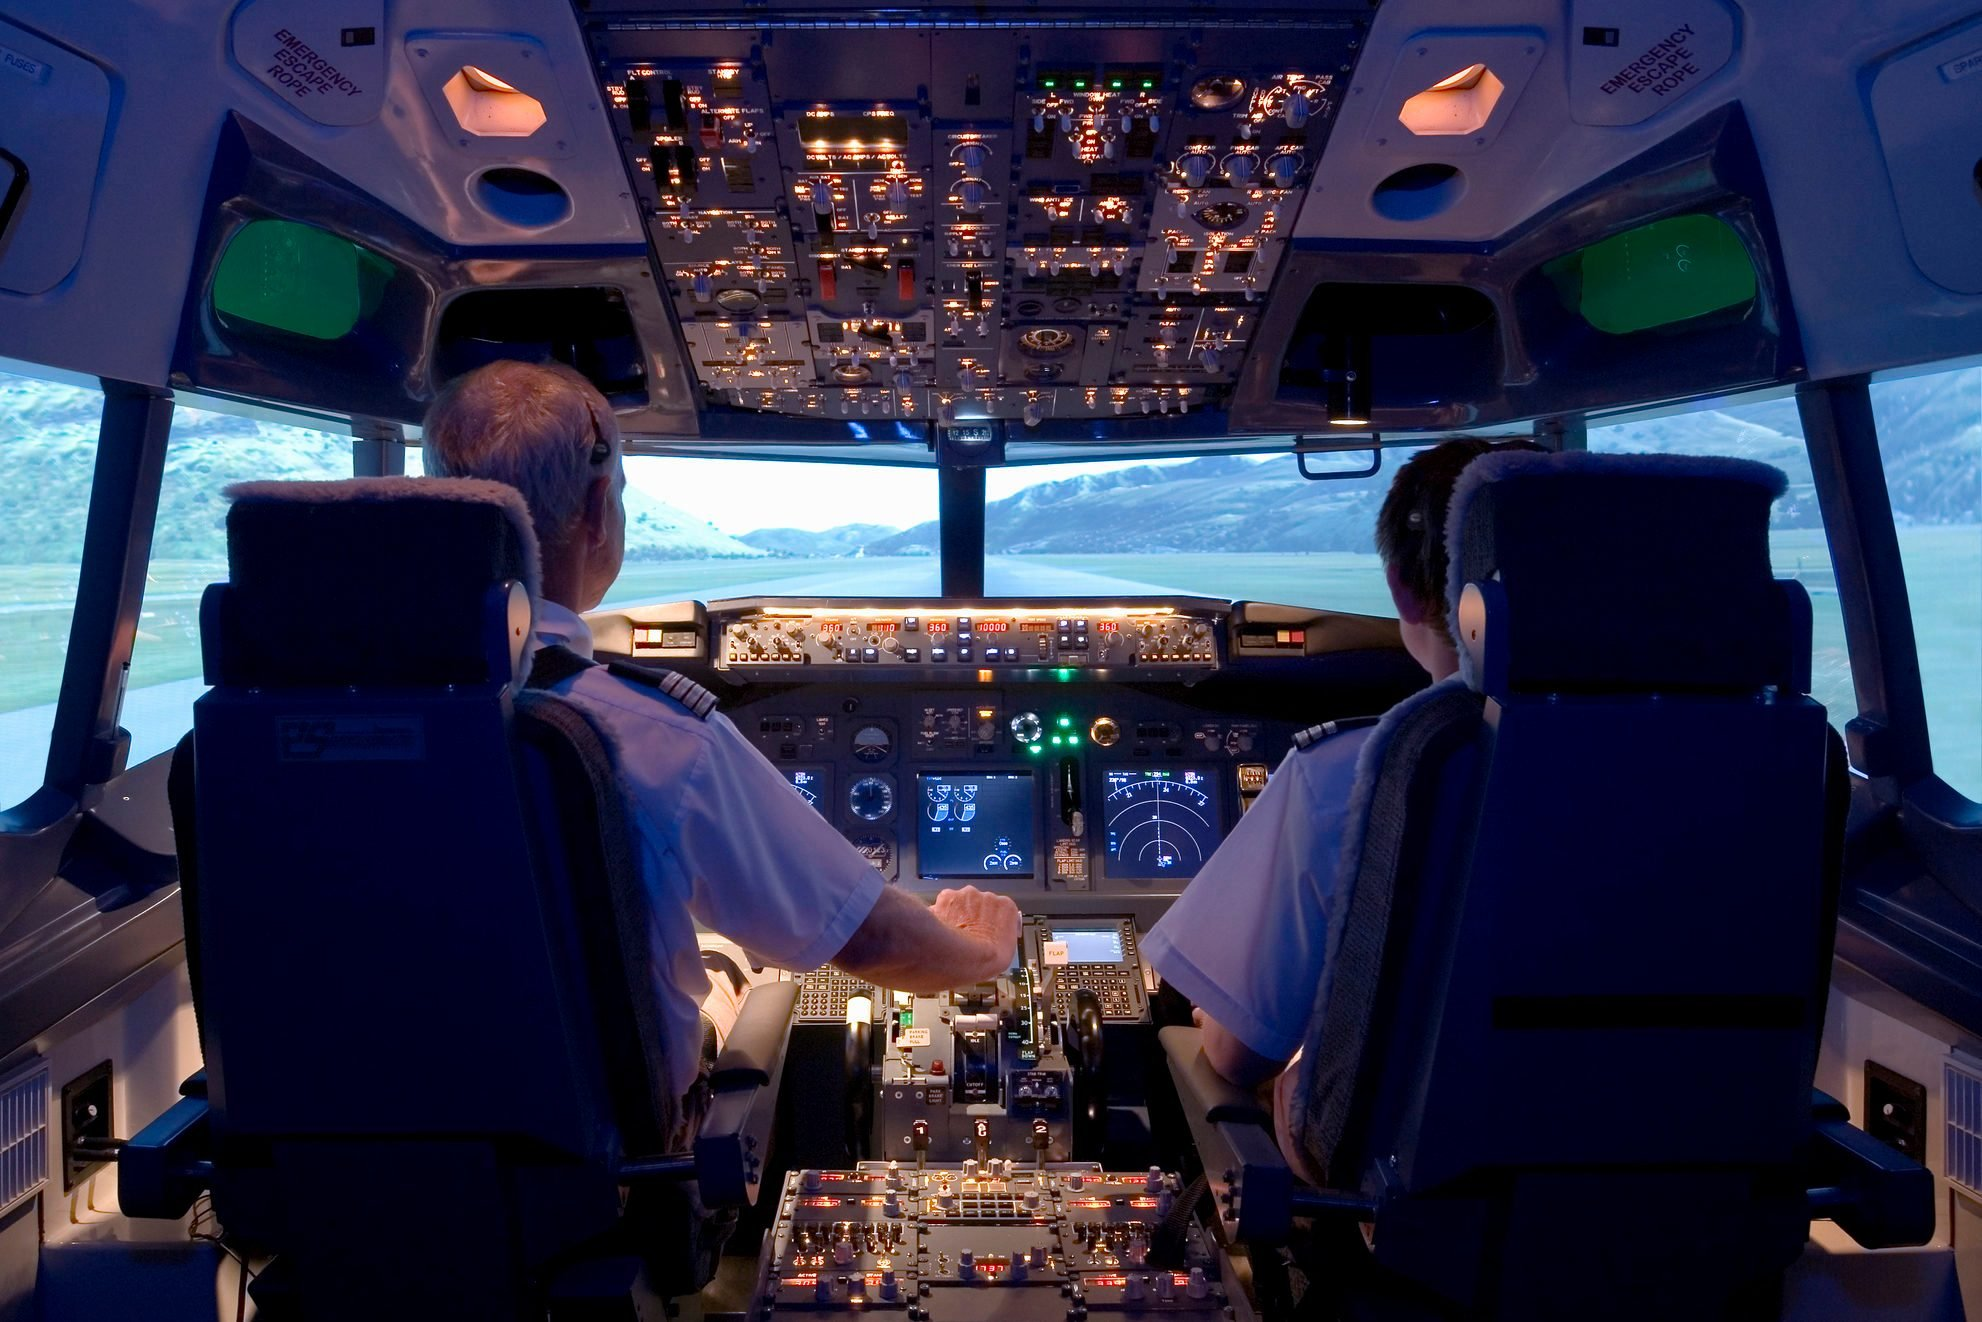 Pilots sitting in flight simulator, rear view